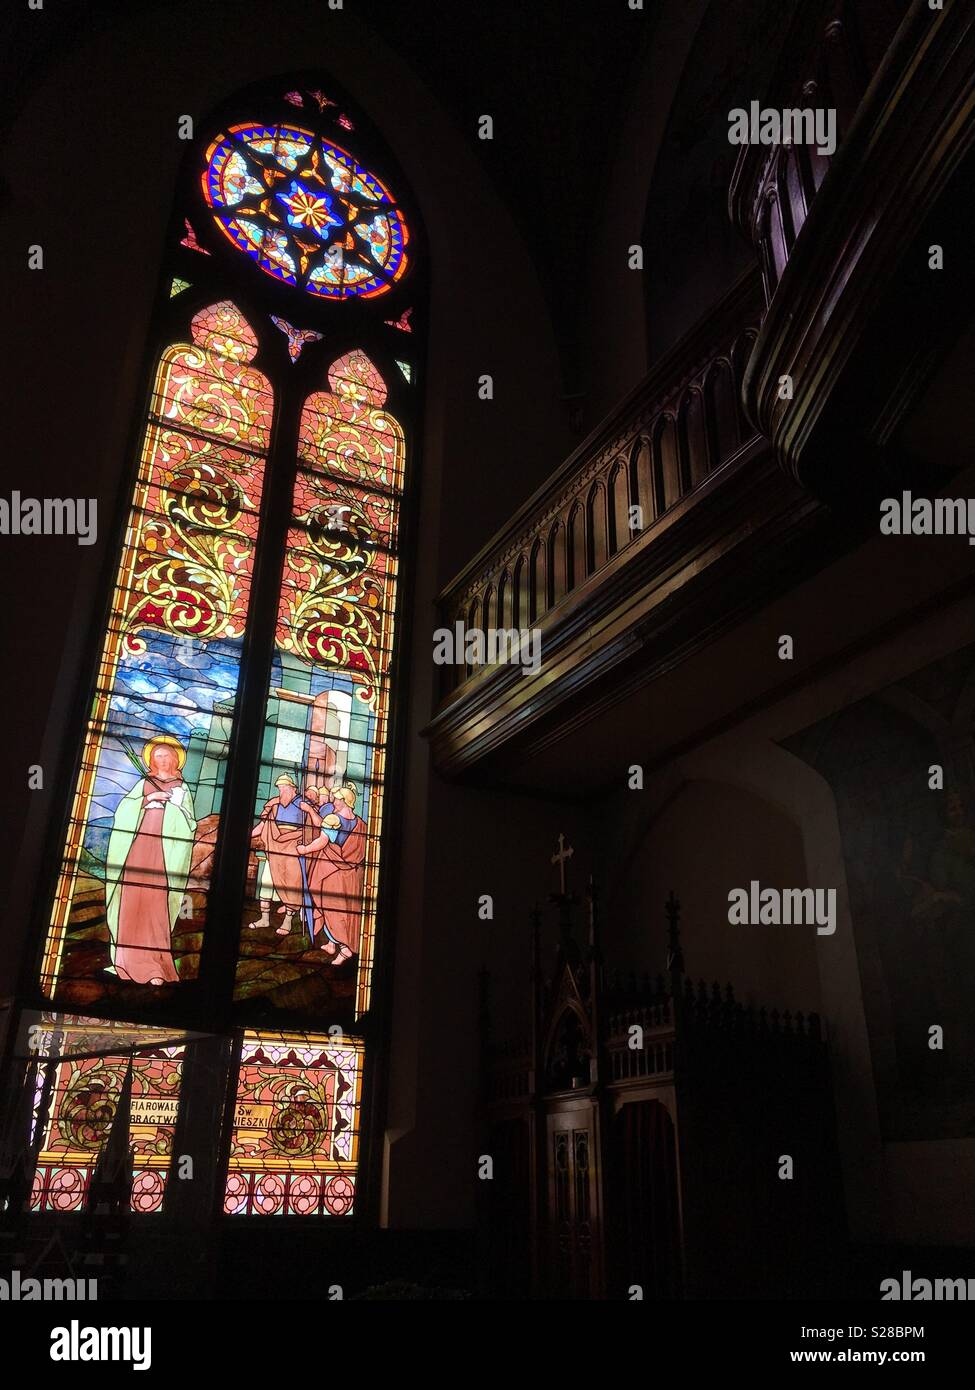 Light shining through stained glass window - Stock Image